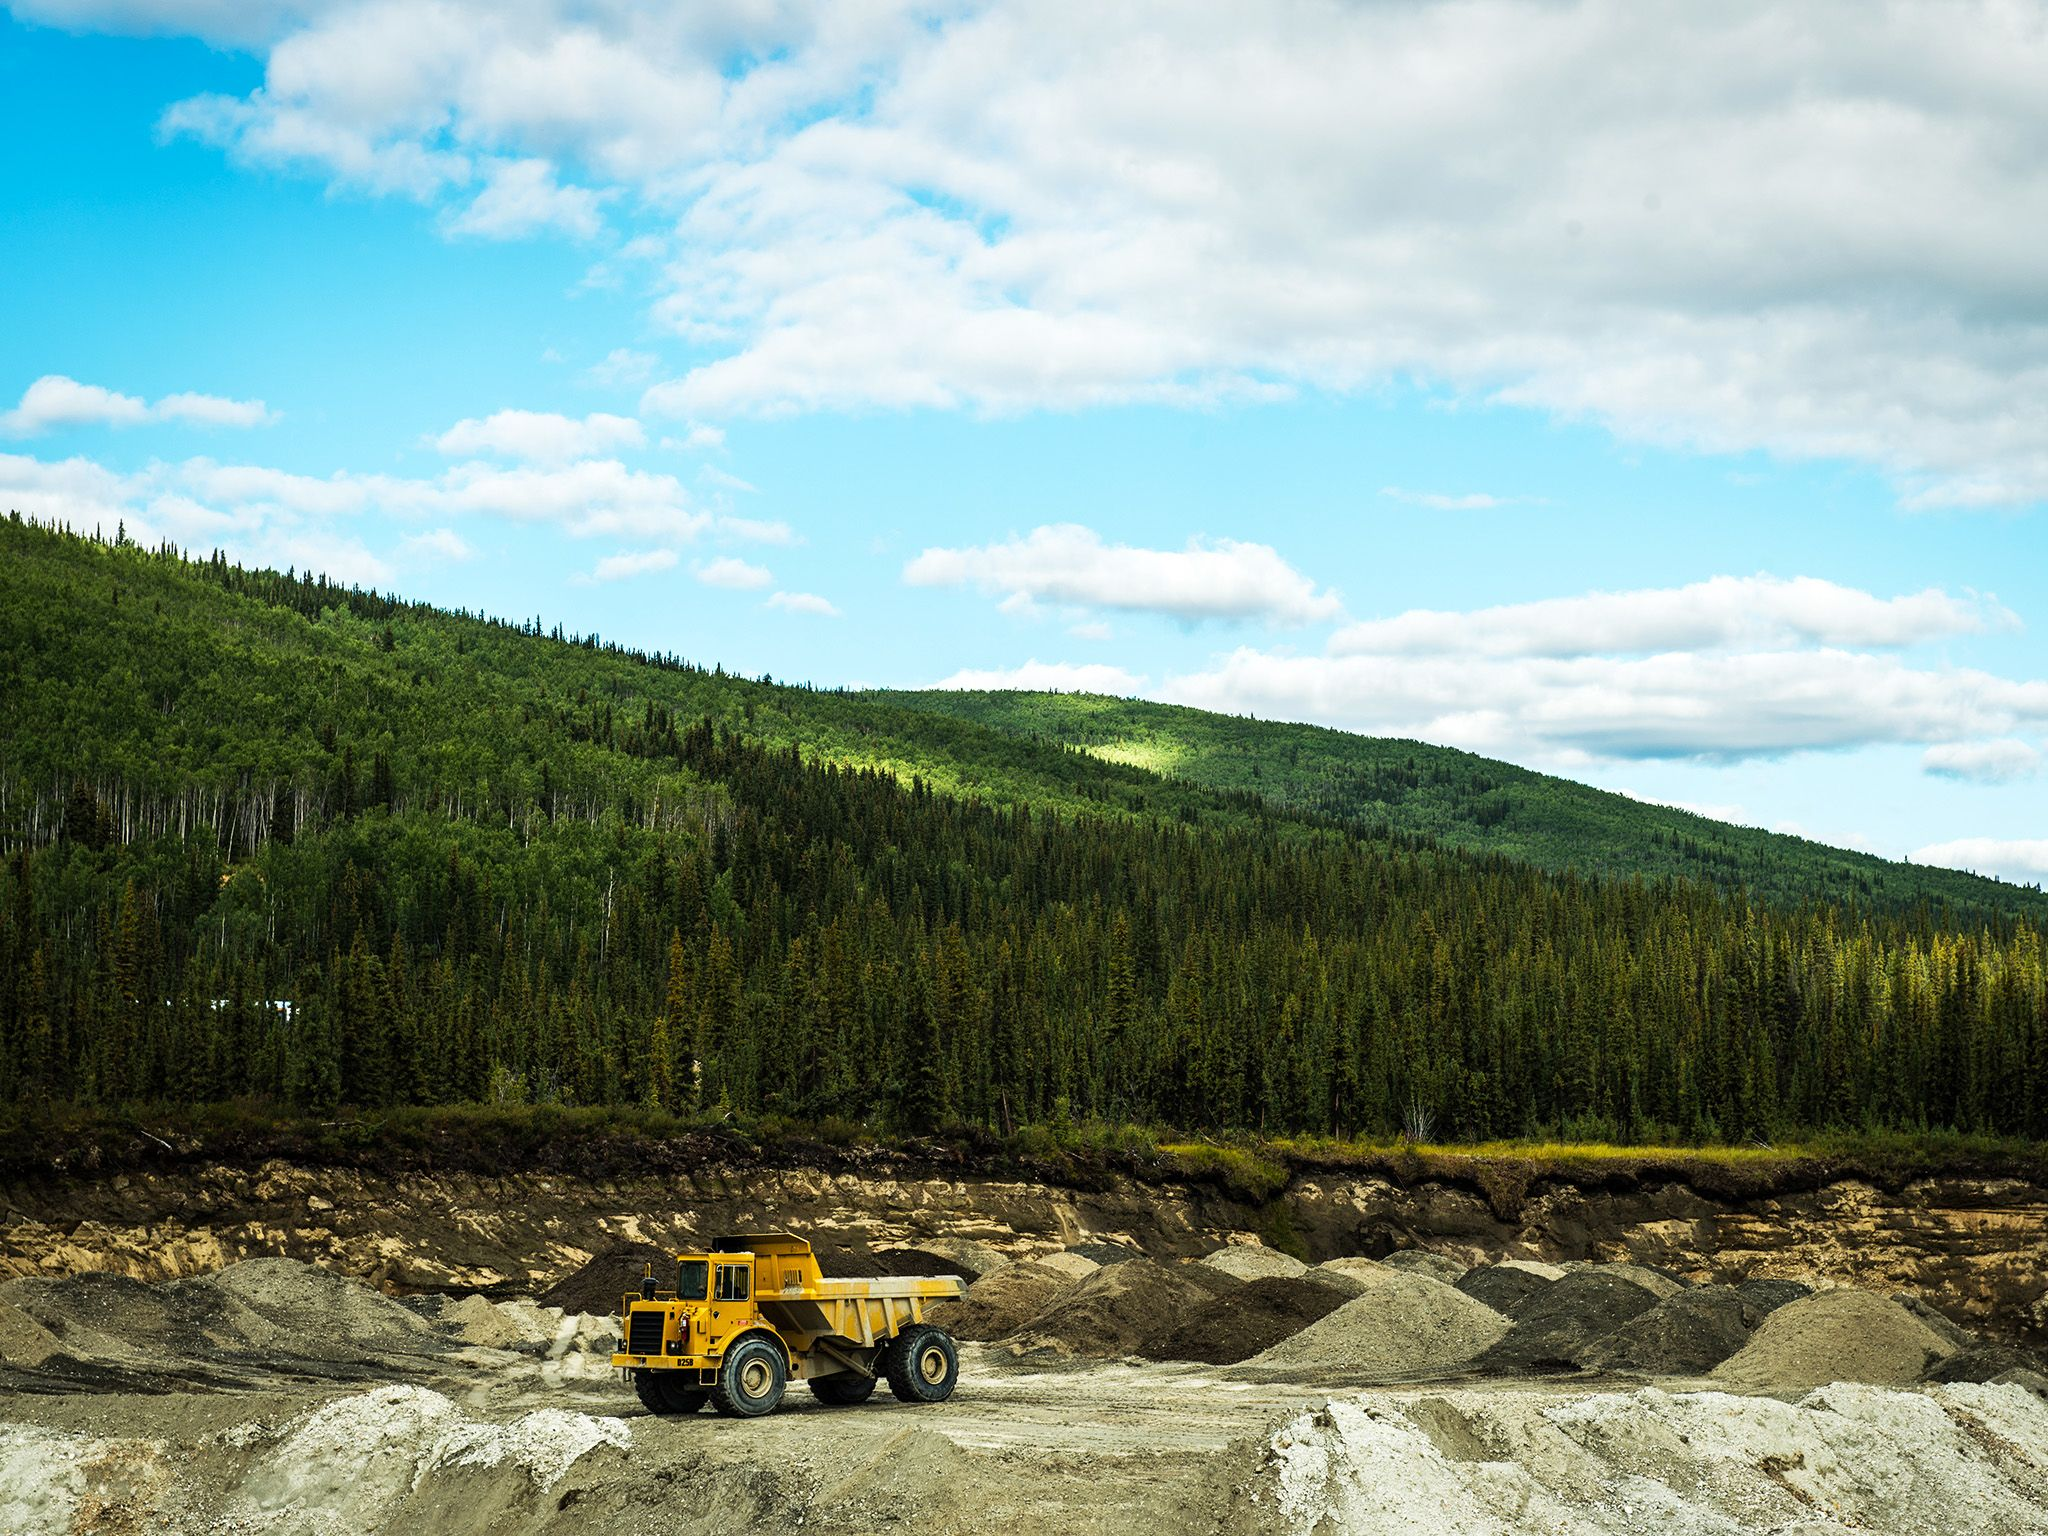 Truck at a mine.